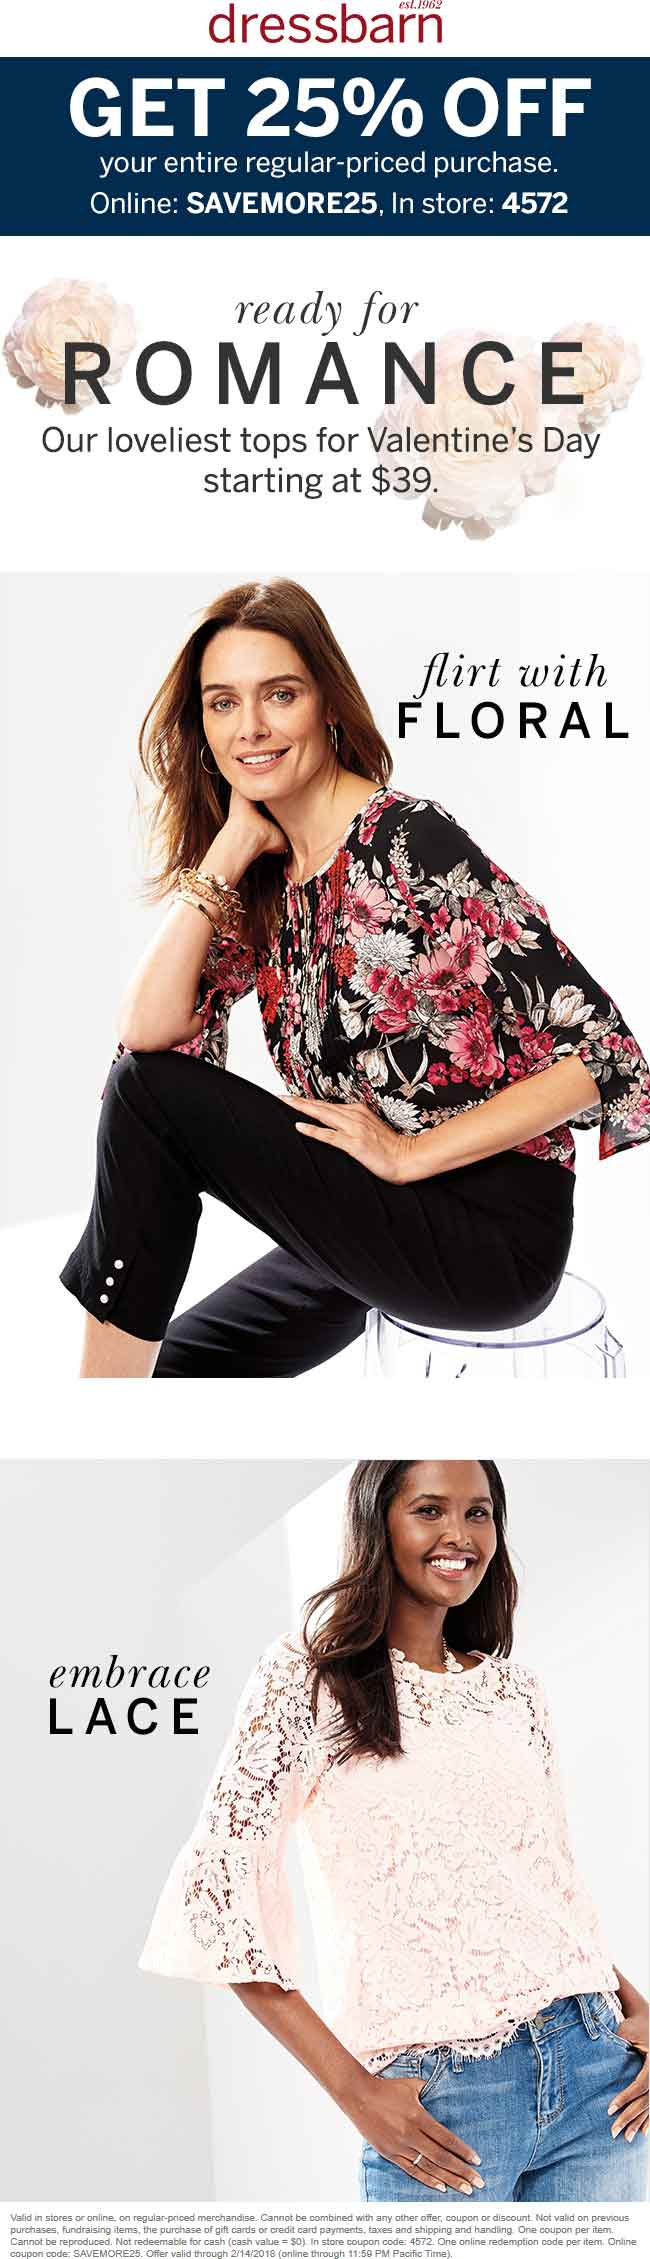 Dressbarn Coupon August 2018 25% off at Dressbarn, or online via promo code SAVEMORE25